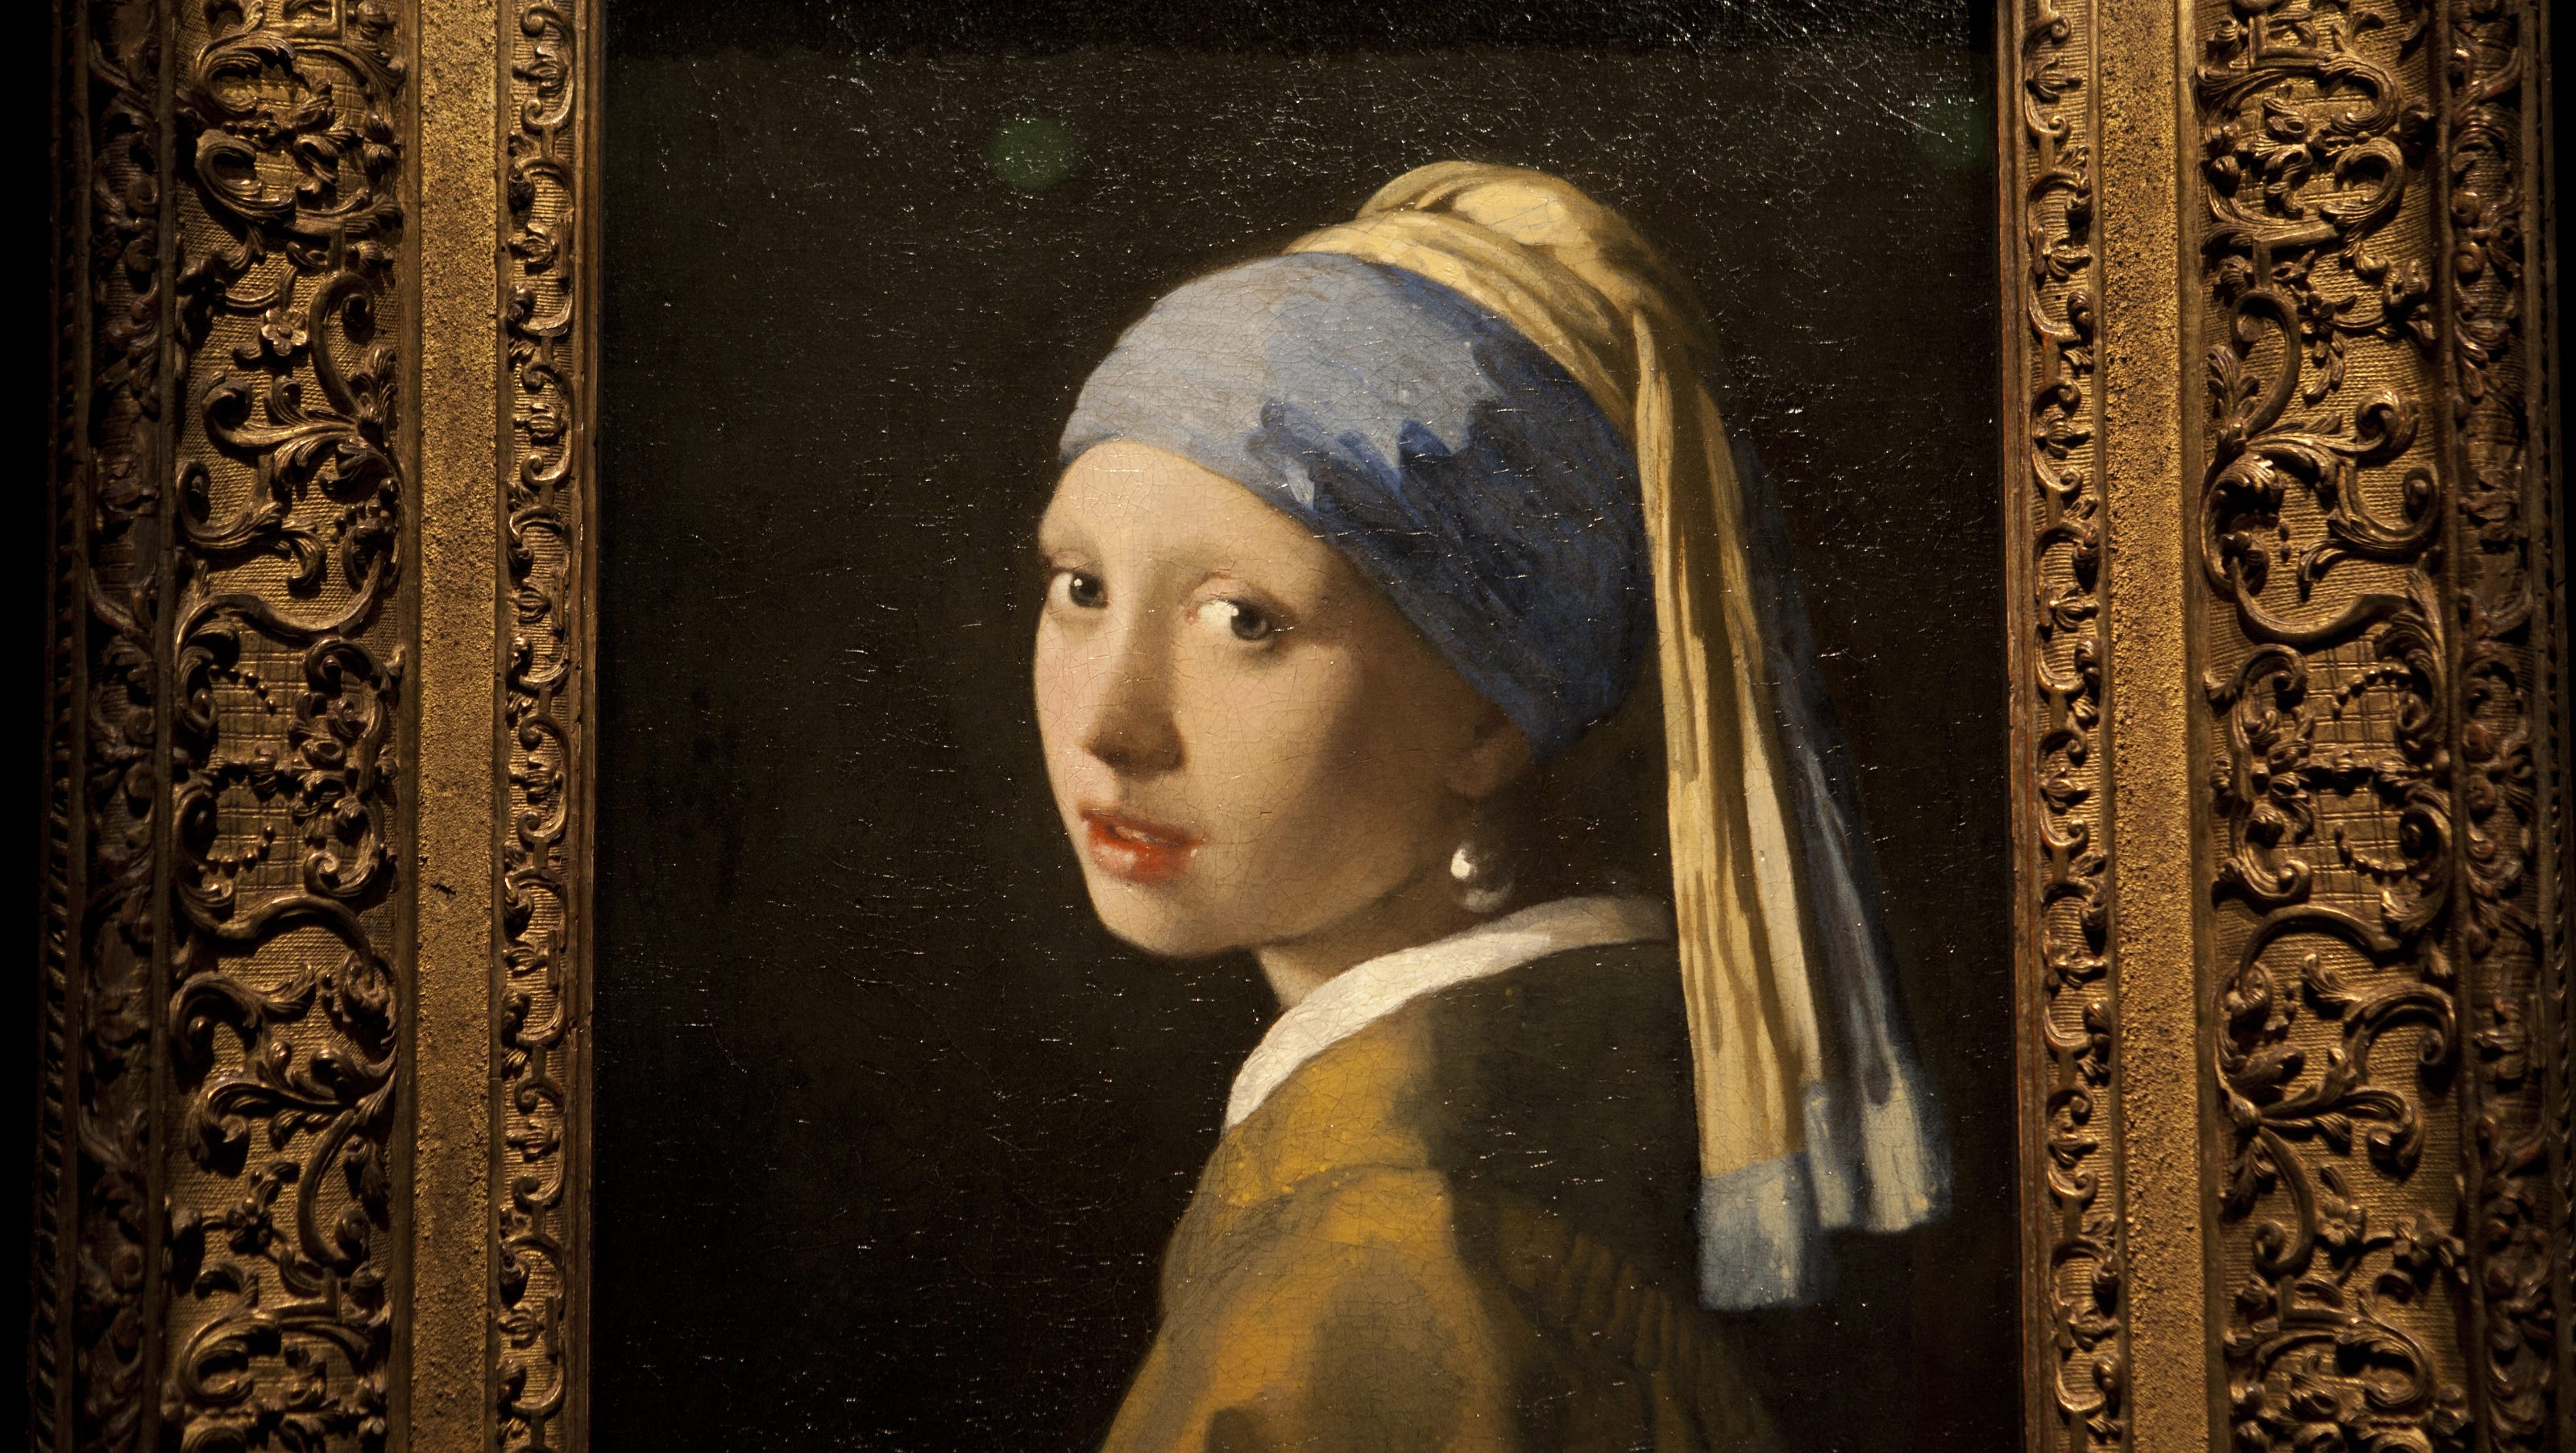 disputed painting is a real vermeer  science shows